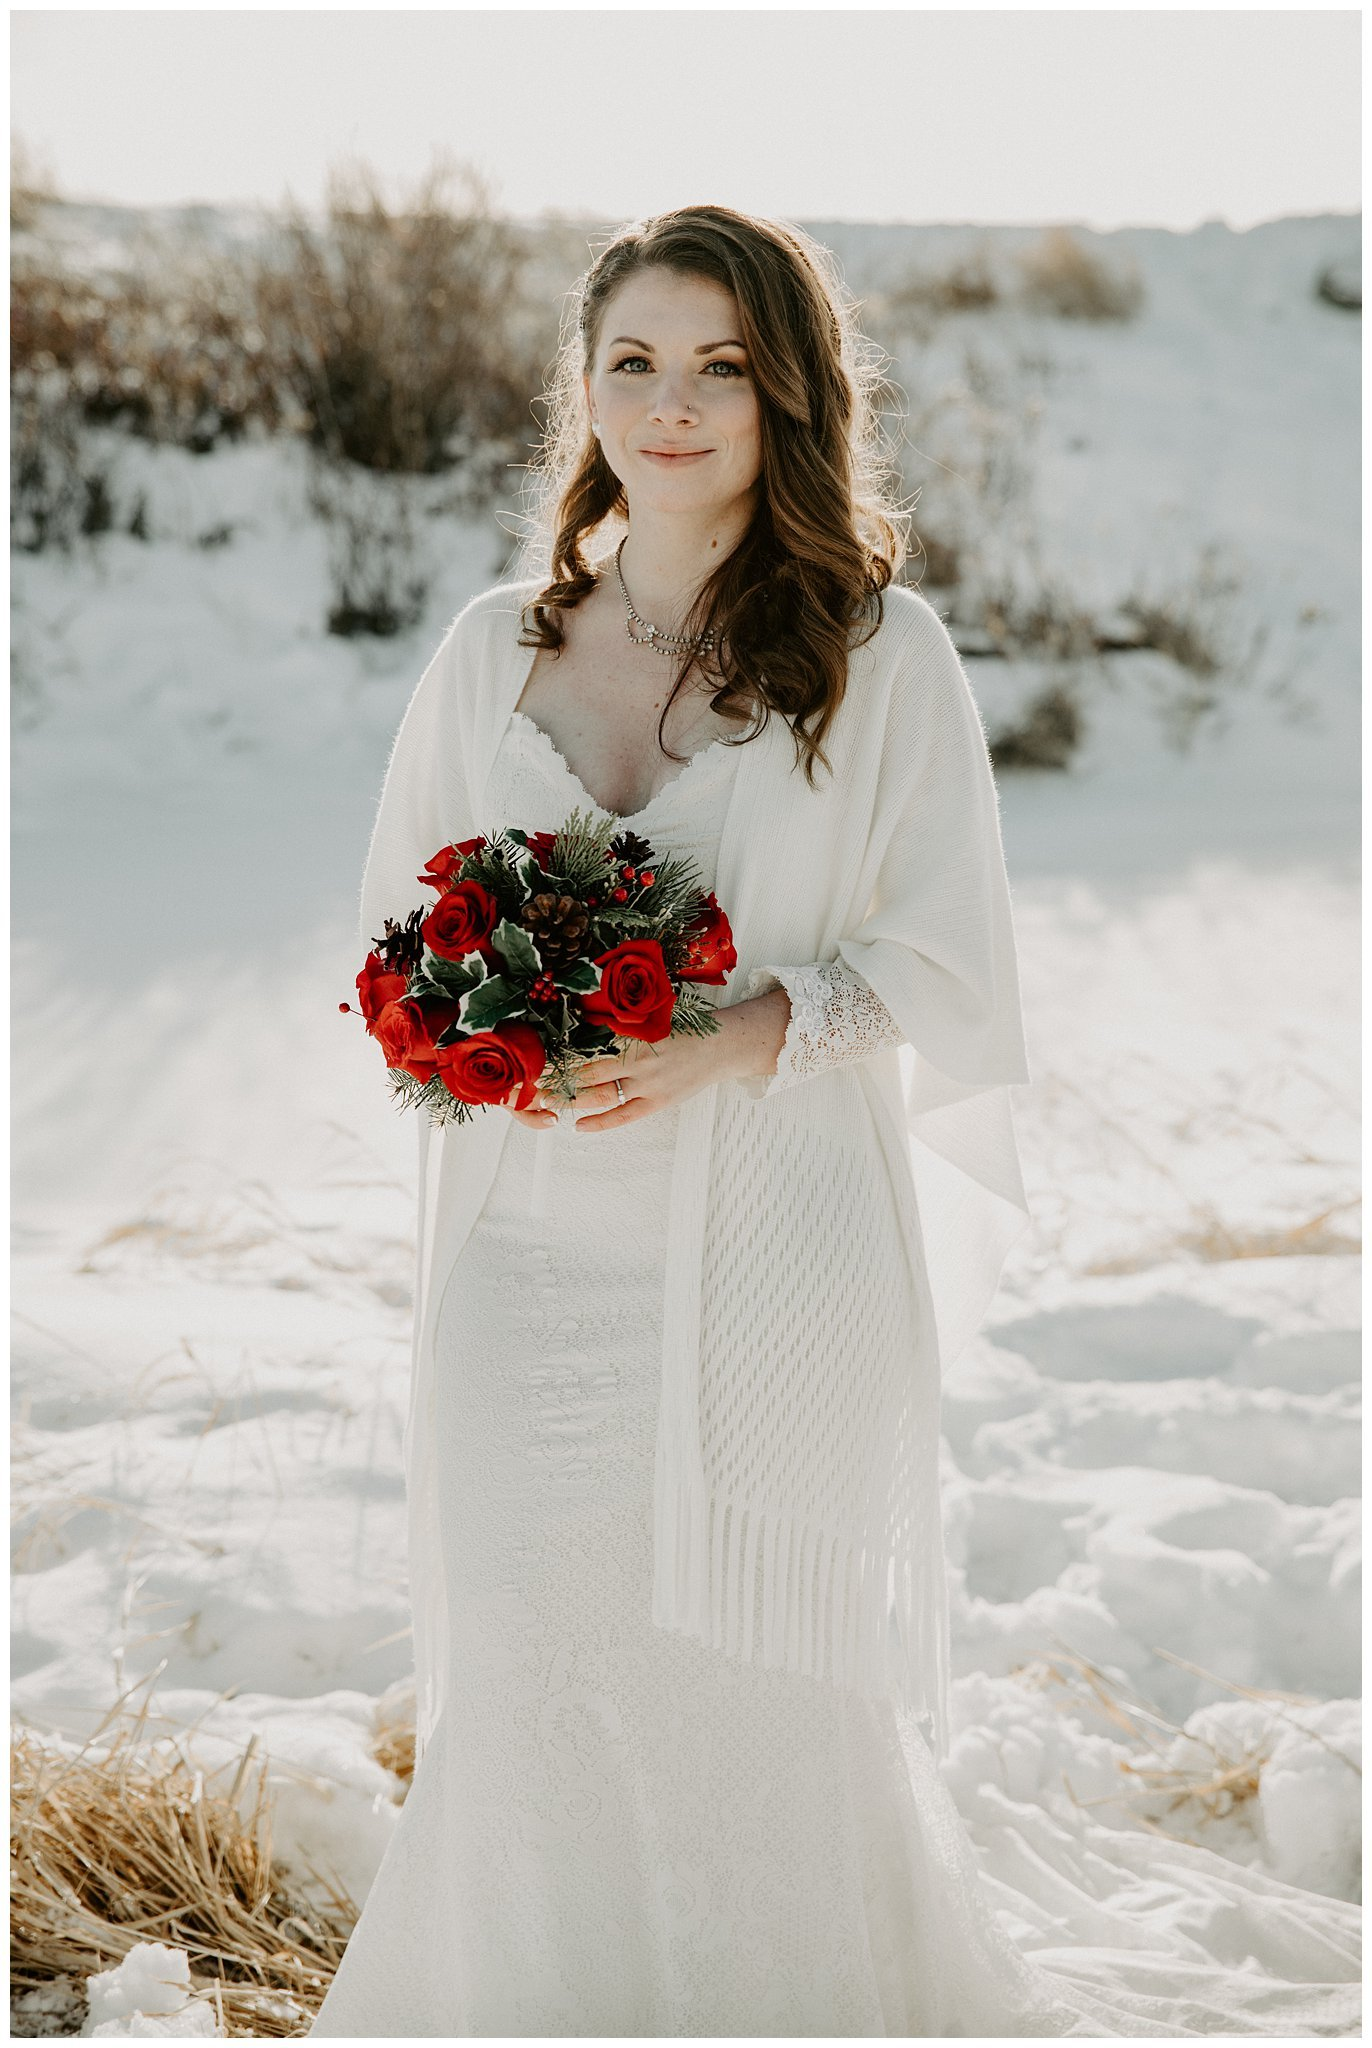 Winter wedding bride with red bouquet